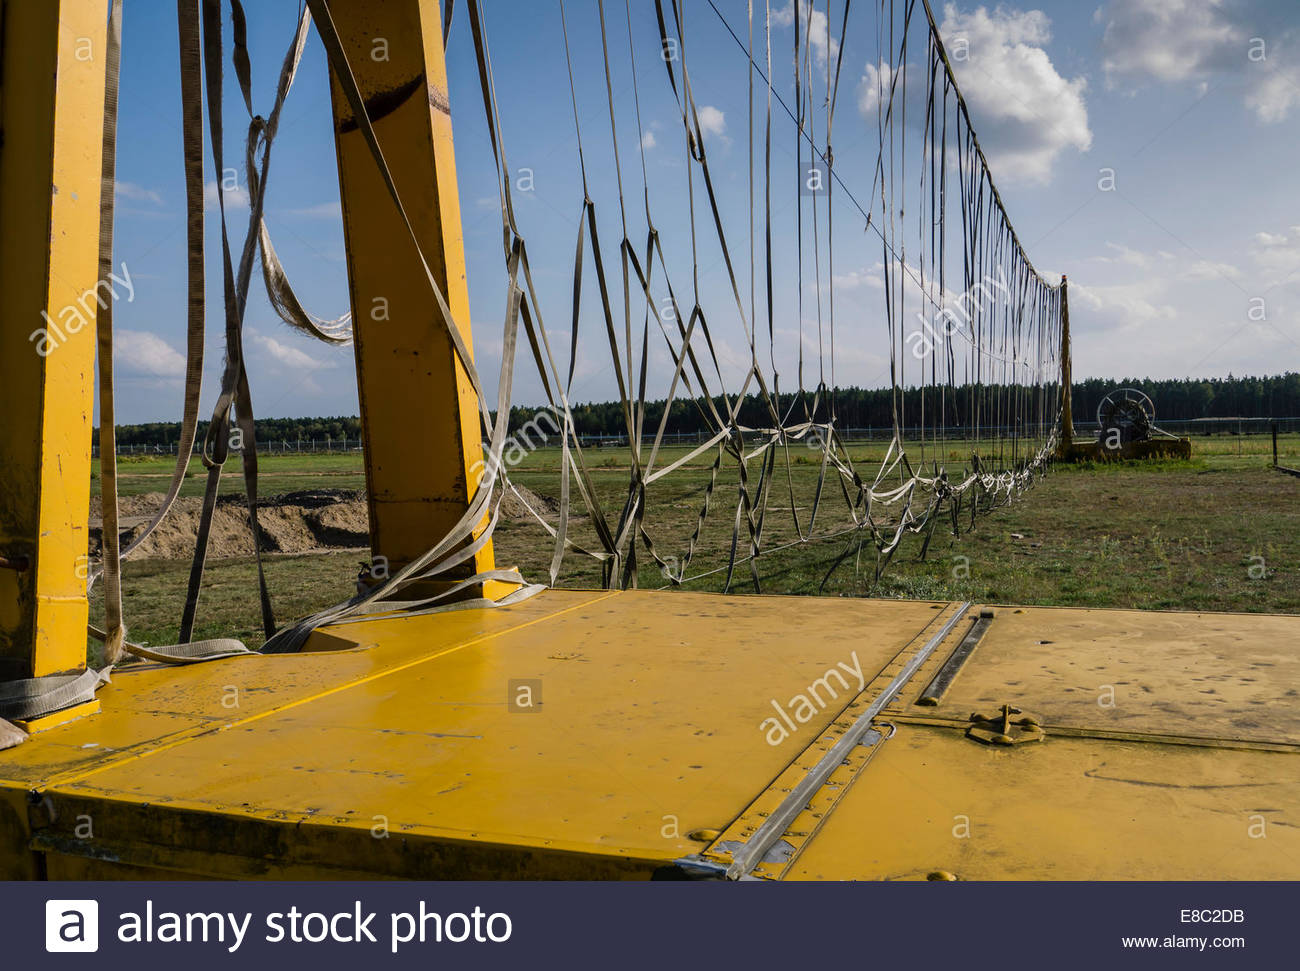 Finow, Germany East DDR, Museum Russian Cold War Base Aircraft Arrester Barrier remains Stock Photo